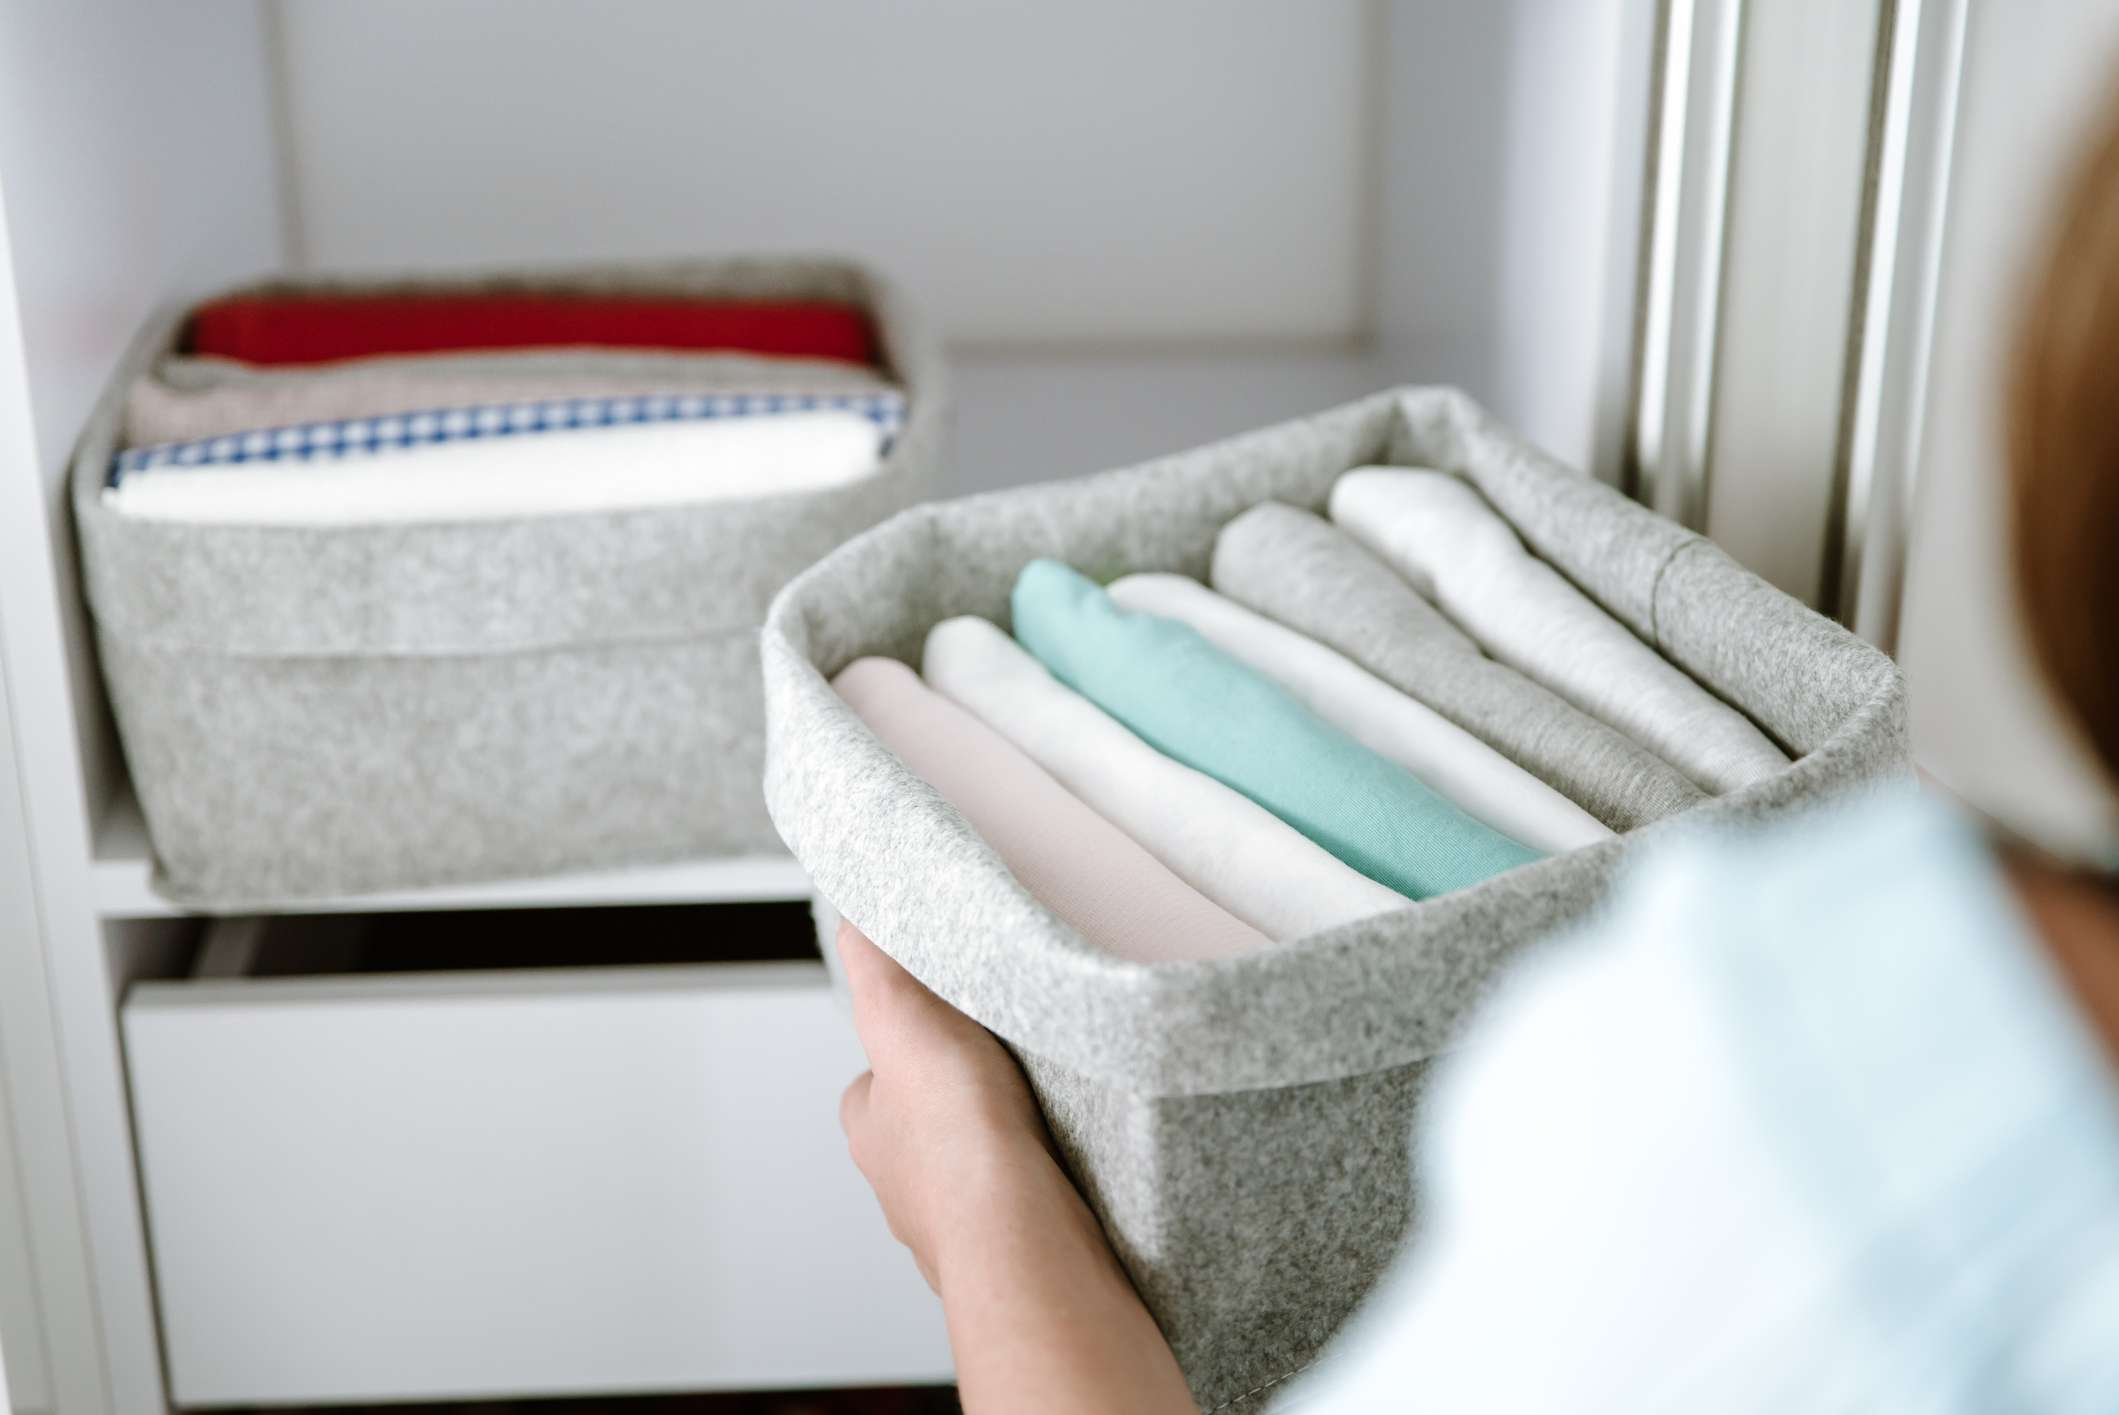 cashmere sweaters folded in a basket